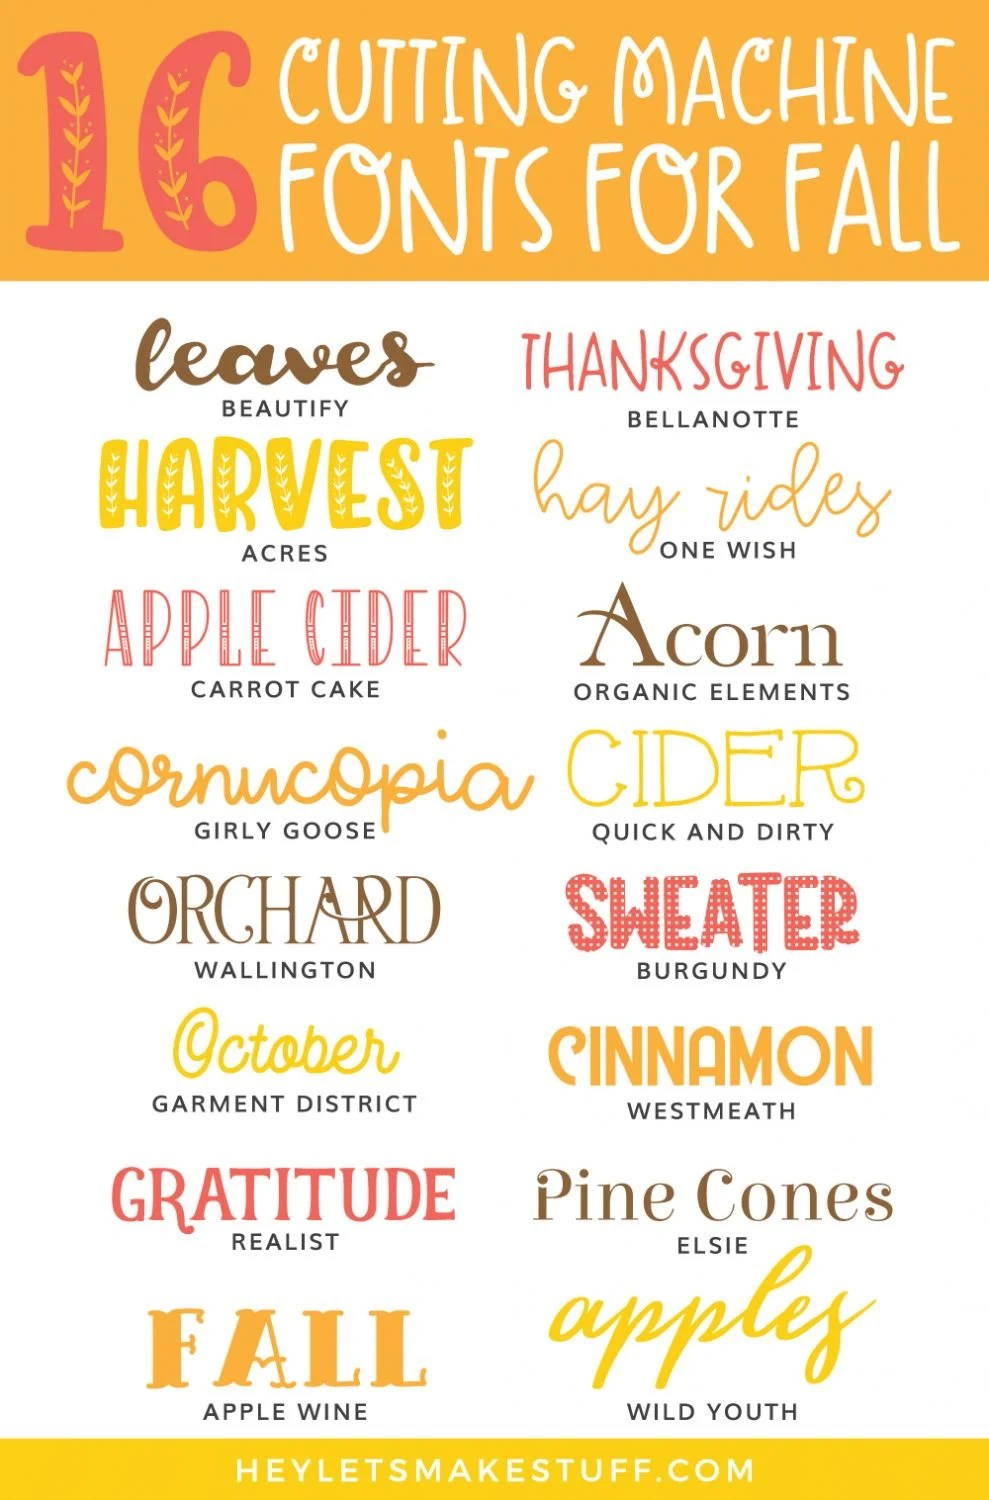 Cutting Machine Fonts for Fall pin image